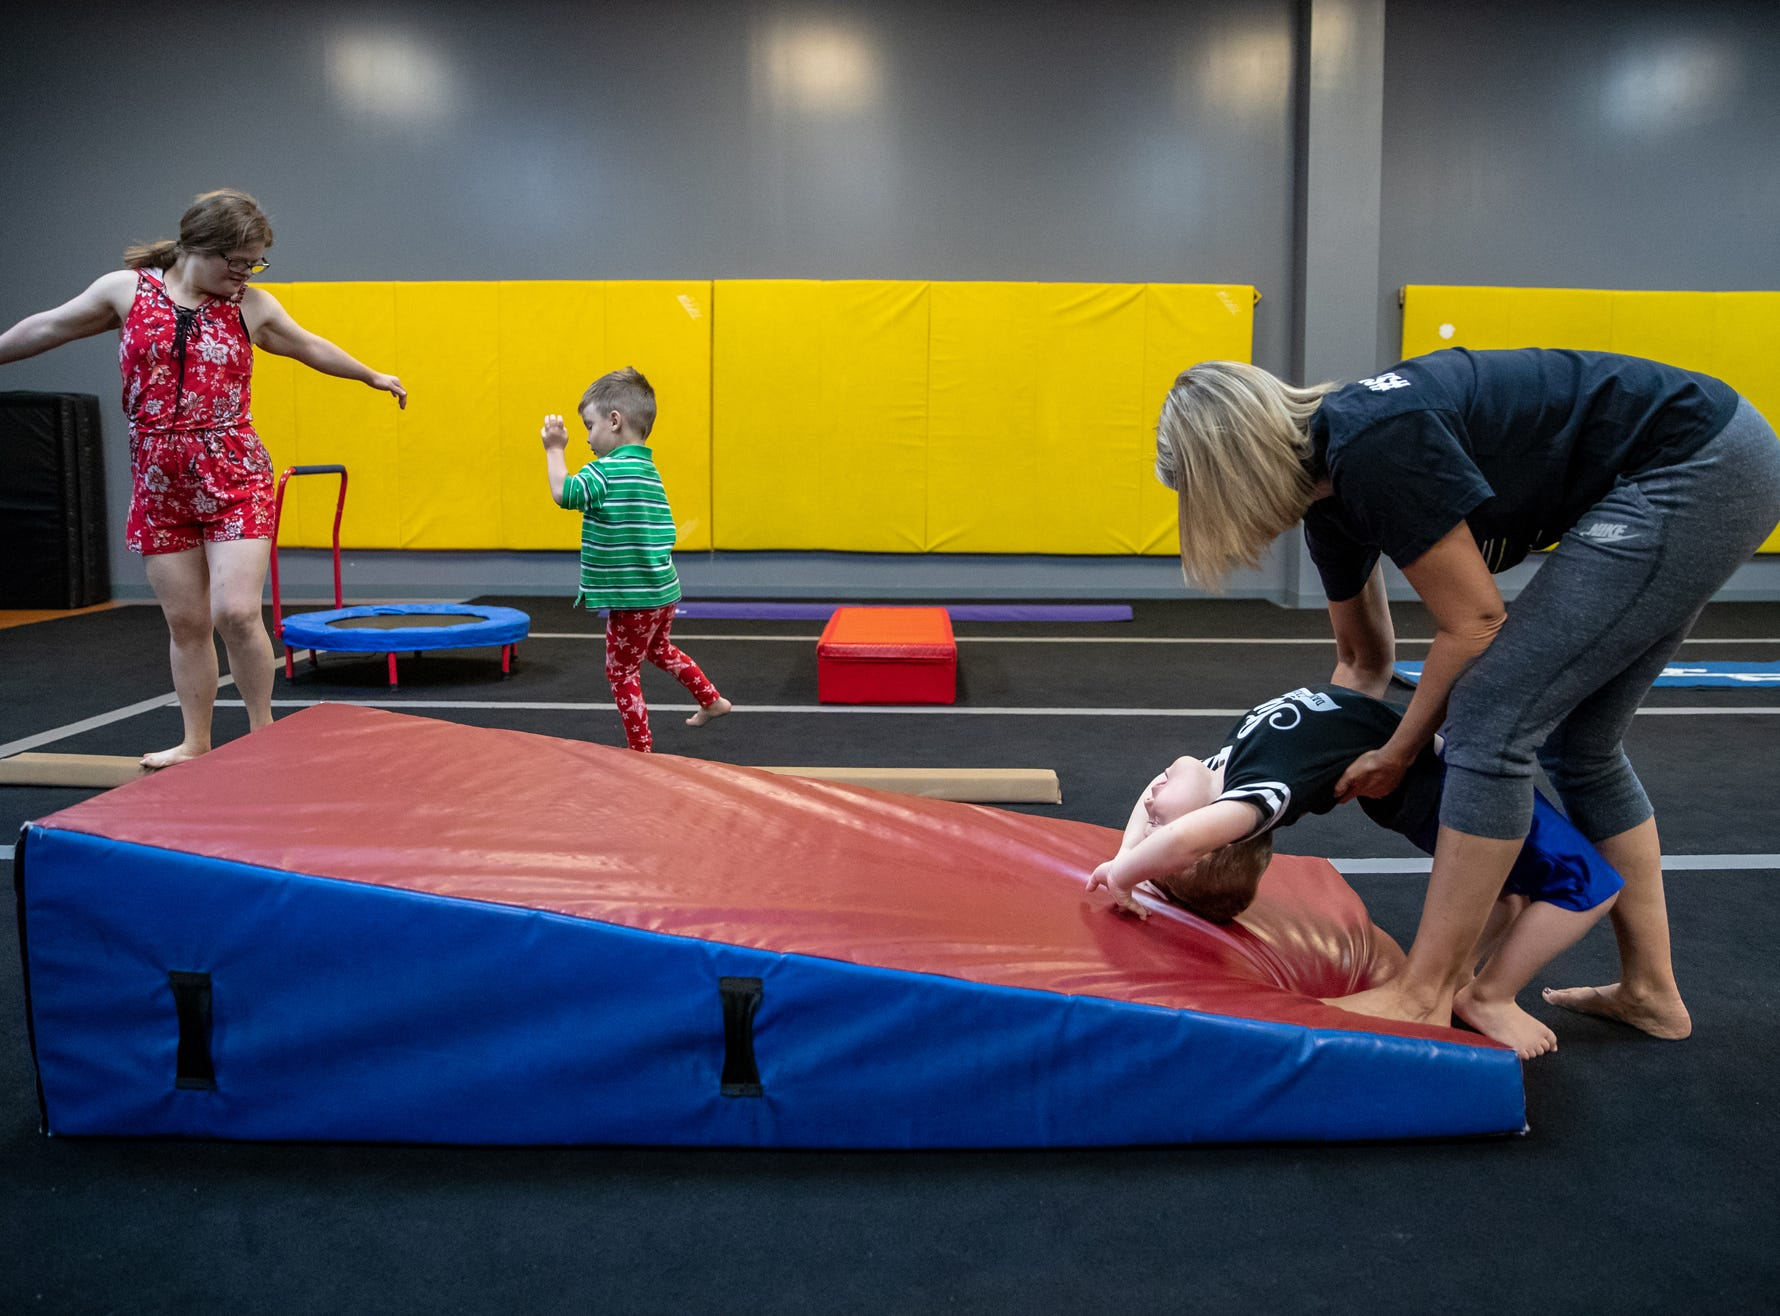 As instructor Emily McCullough helps Owen Riley, 3, with a backbend, Mickey Deputy walks a balance beam with student Max Black, 4, during gymnastics class at Style Dance Academy in Franklin, Ind., on Tuesday, Oct. 9, 2018.